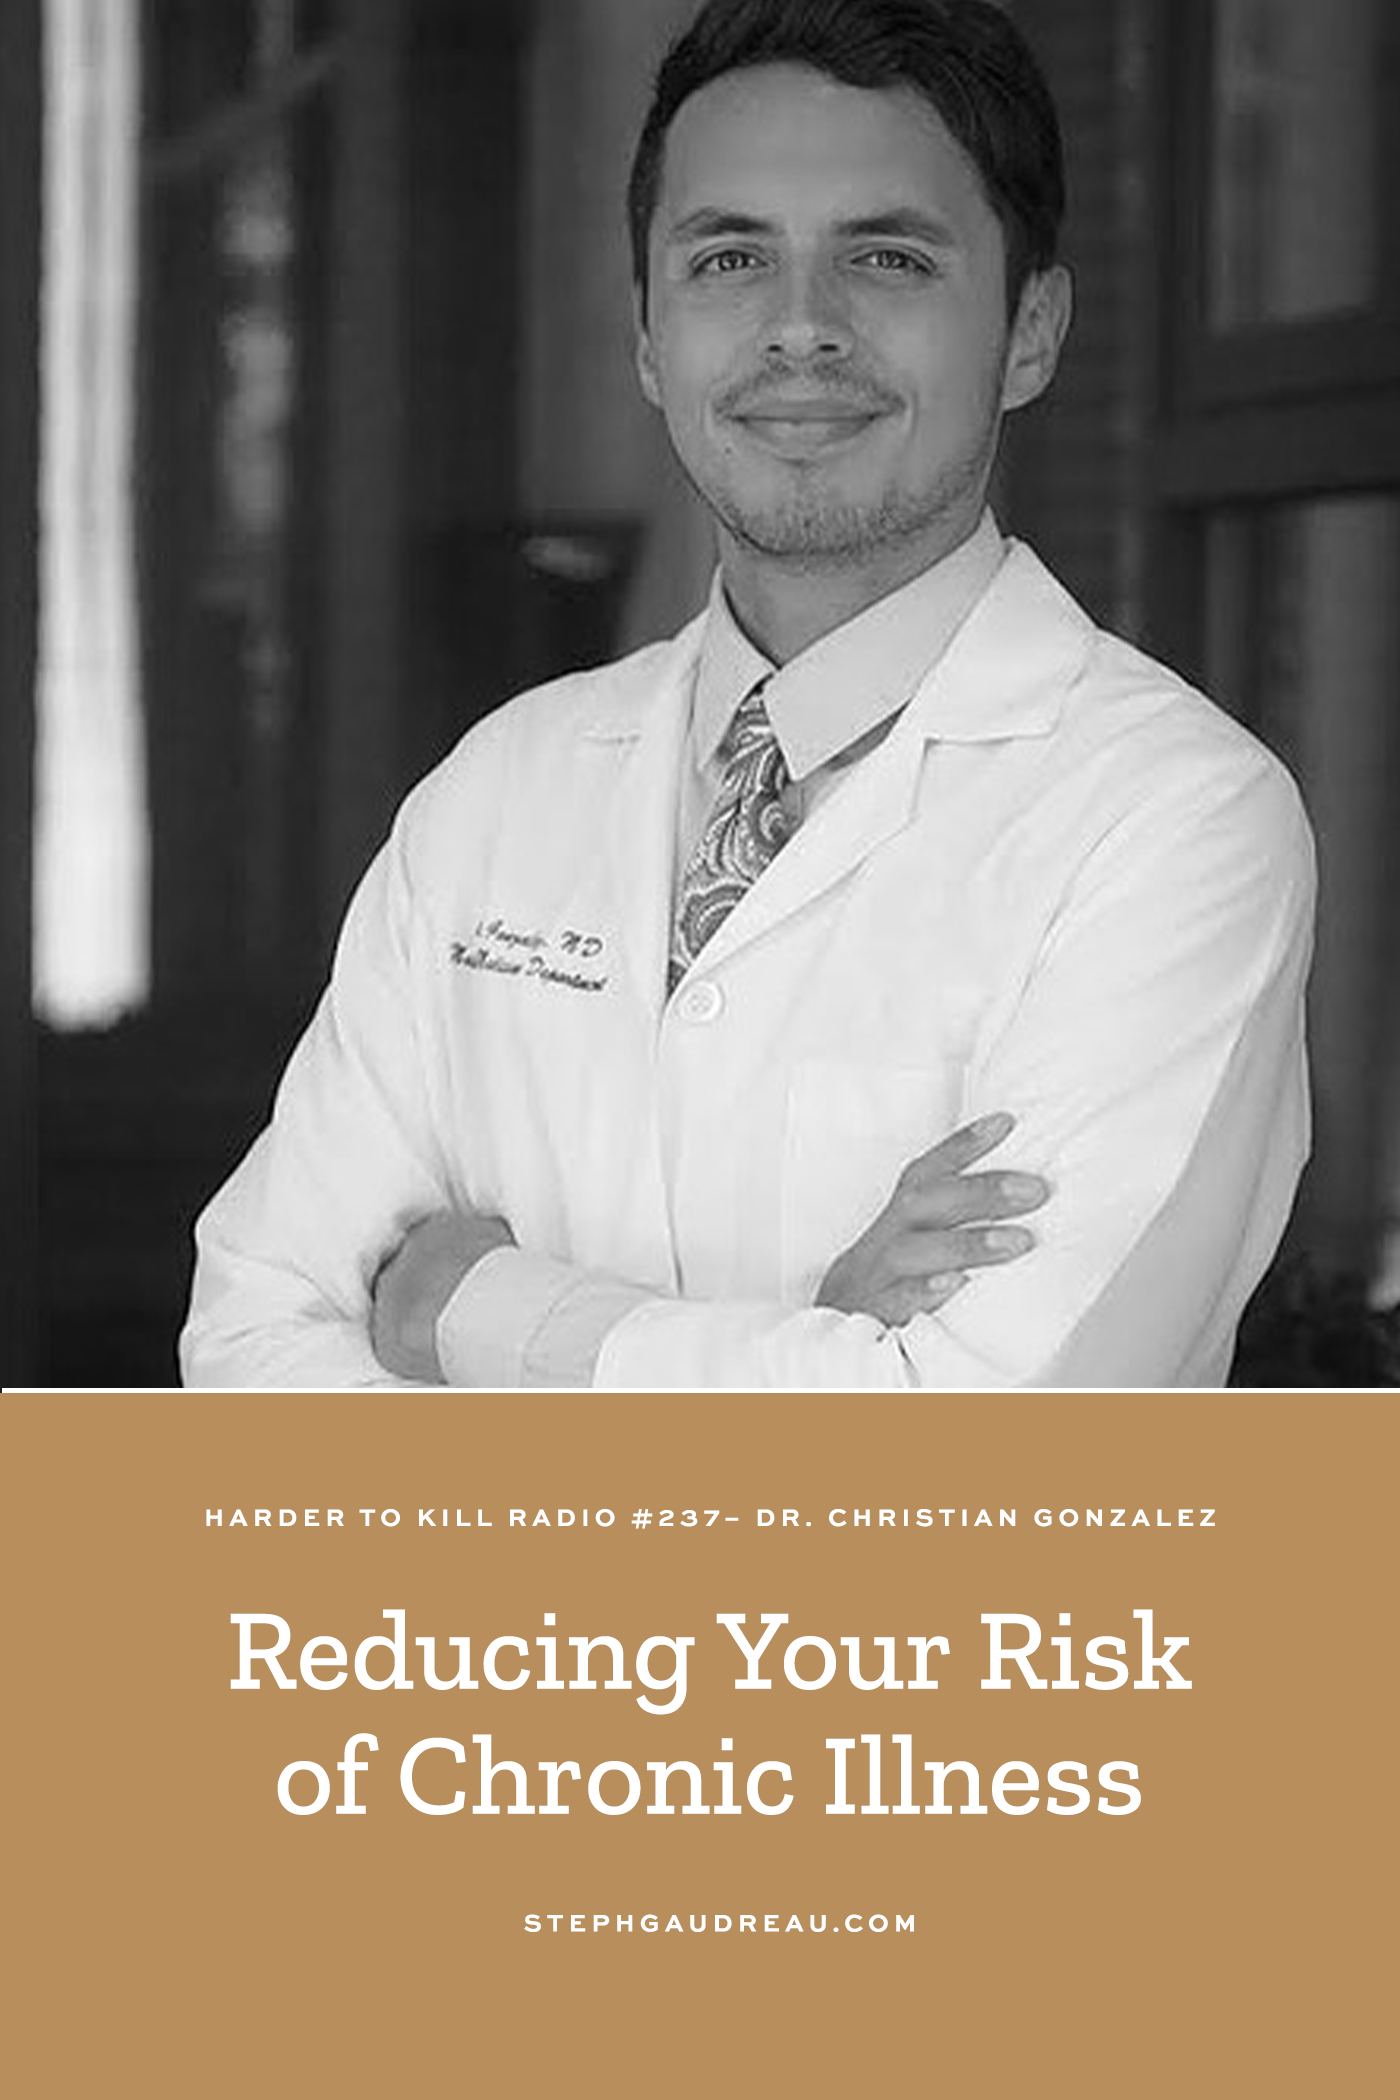 Harder To Kill Radio 237 How To Reduce Your Risk Of A Cancer Diagnosis w/ Dr. Christian Gonzalez